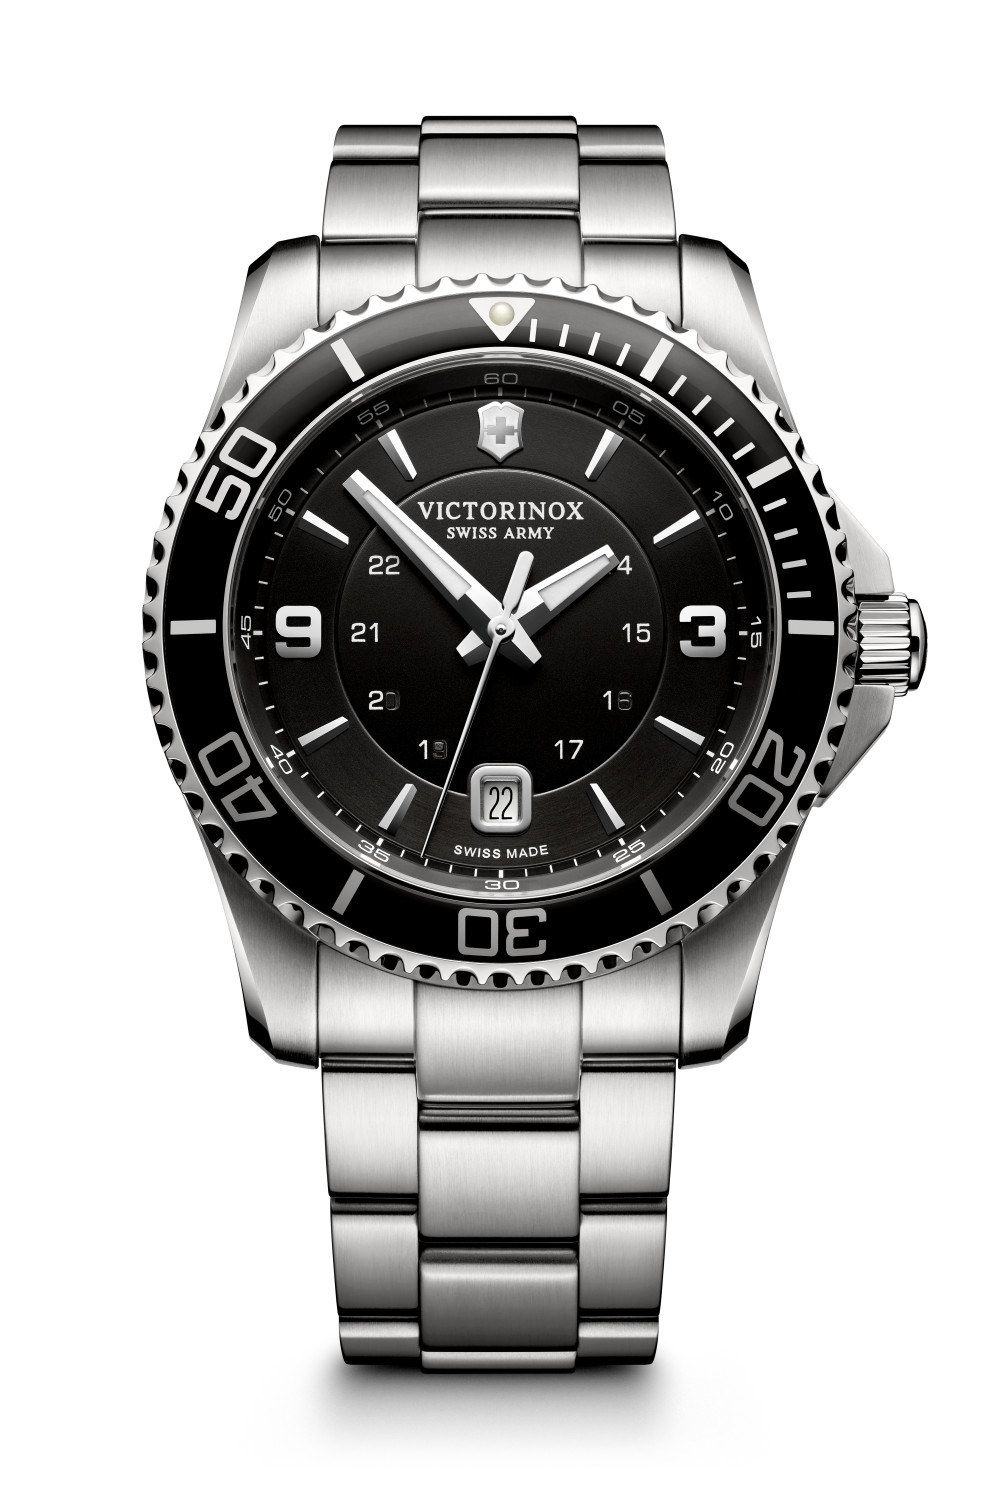 4ae0a4f1e GQ rounds up 5 affordable watches that look expensive - like the Victorinox  Swiss Army Maverick.